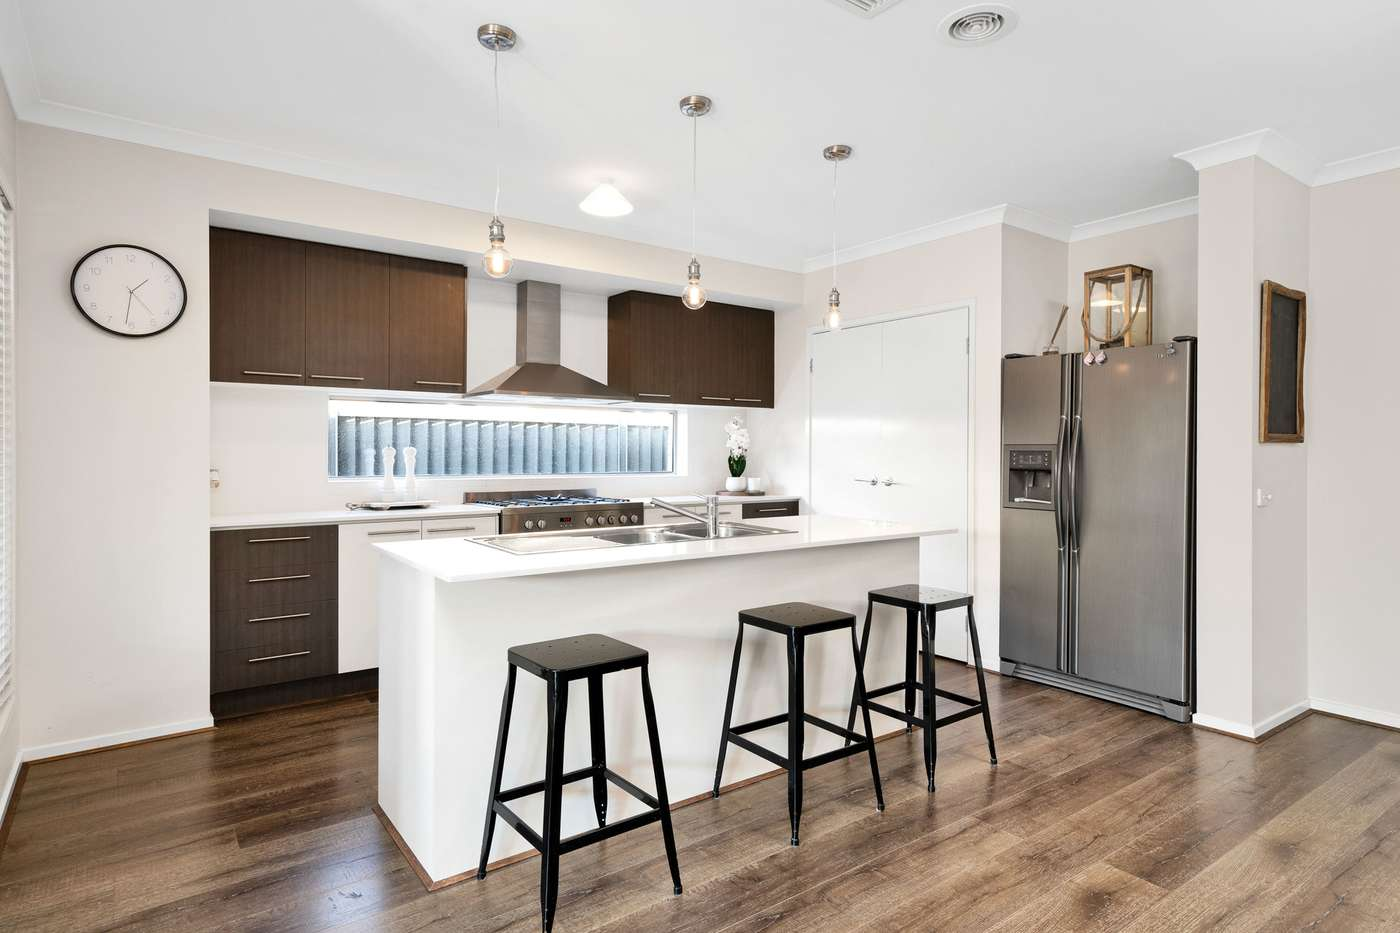 Main view of Homely house listing, 18 Firecrest Road, Manor Lakes, VIC 3024